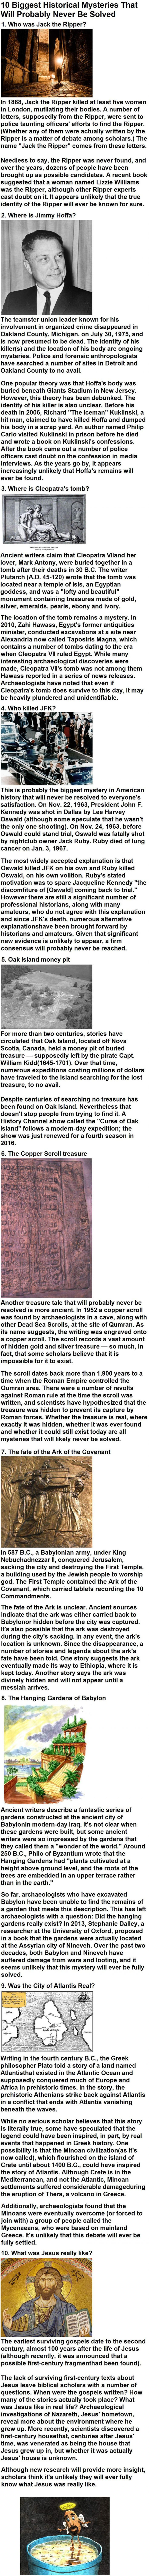 10 Biggest Historical Mysteries That Will Probably Never Be Solved